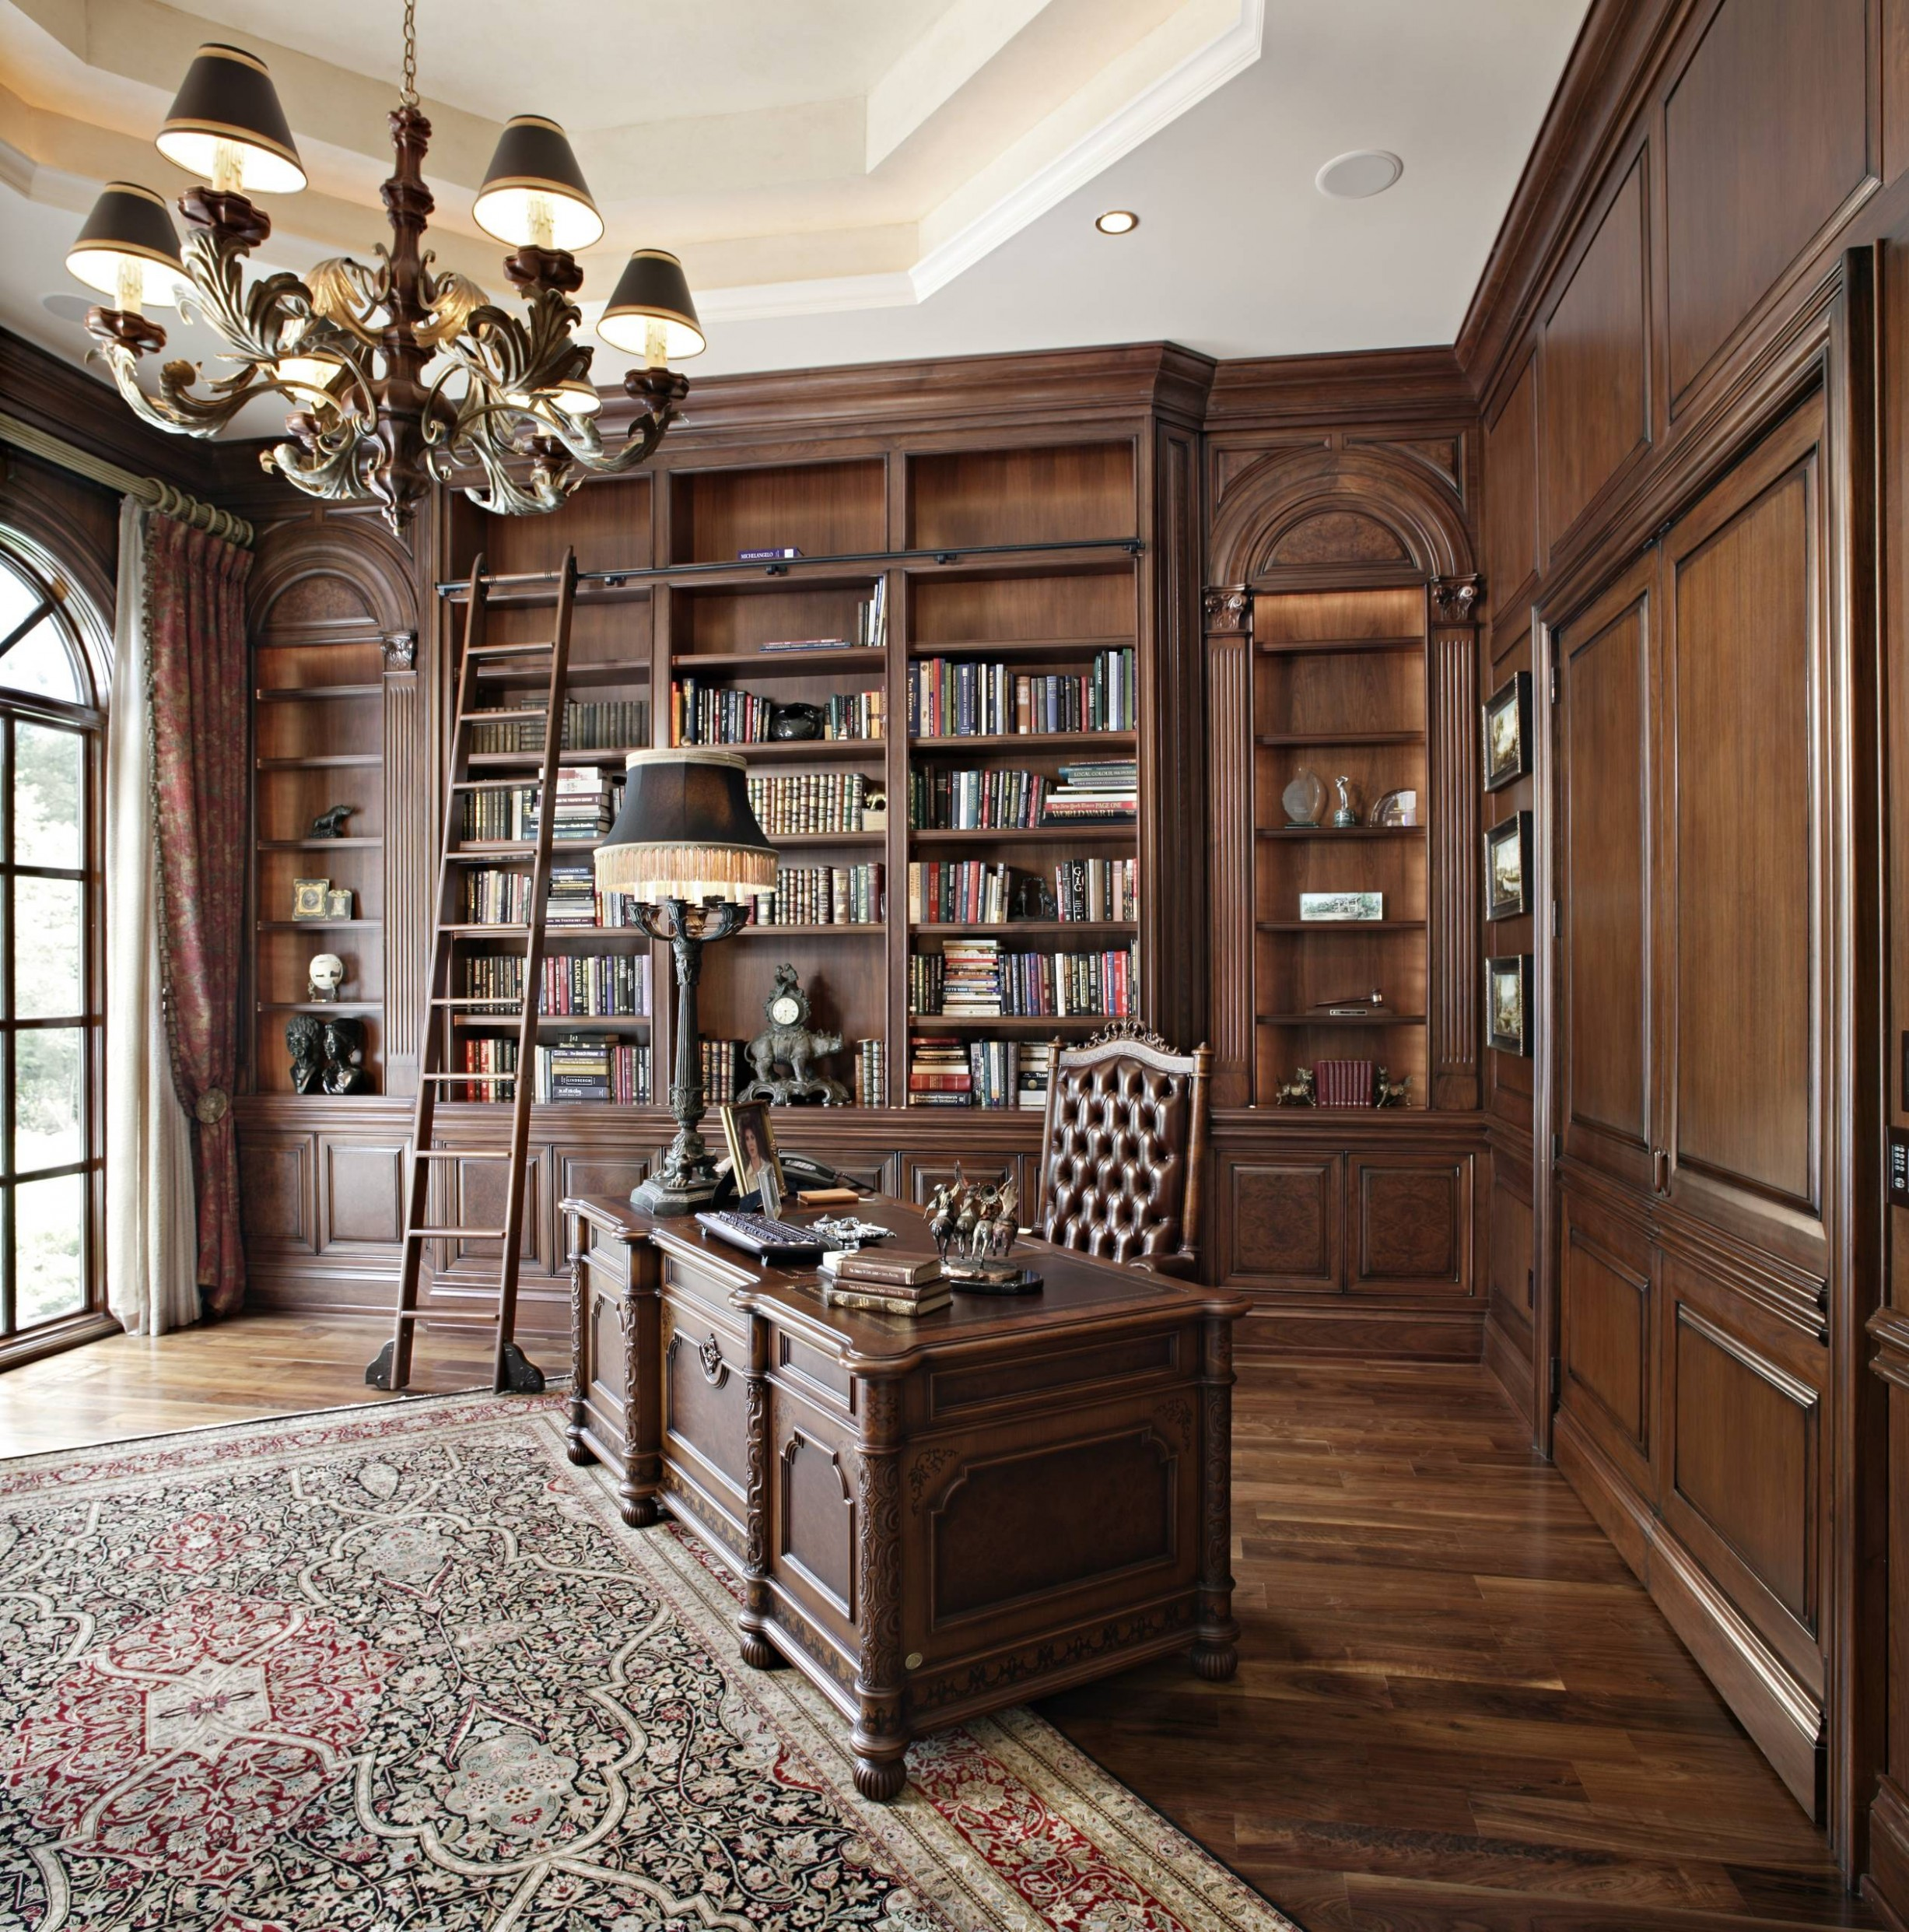 12 Beautiful Victorian Home Office Pictures & Ideas - November  - Victorian Home Office Ideas